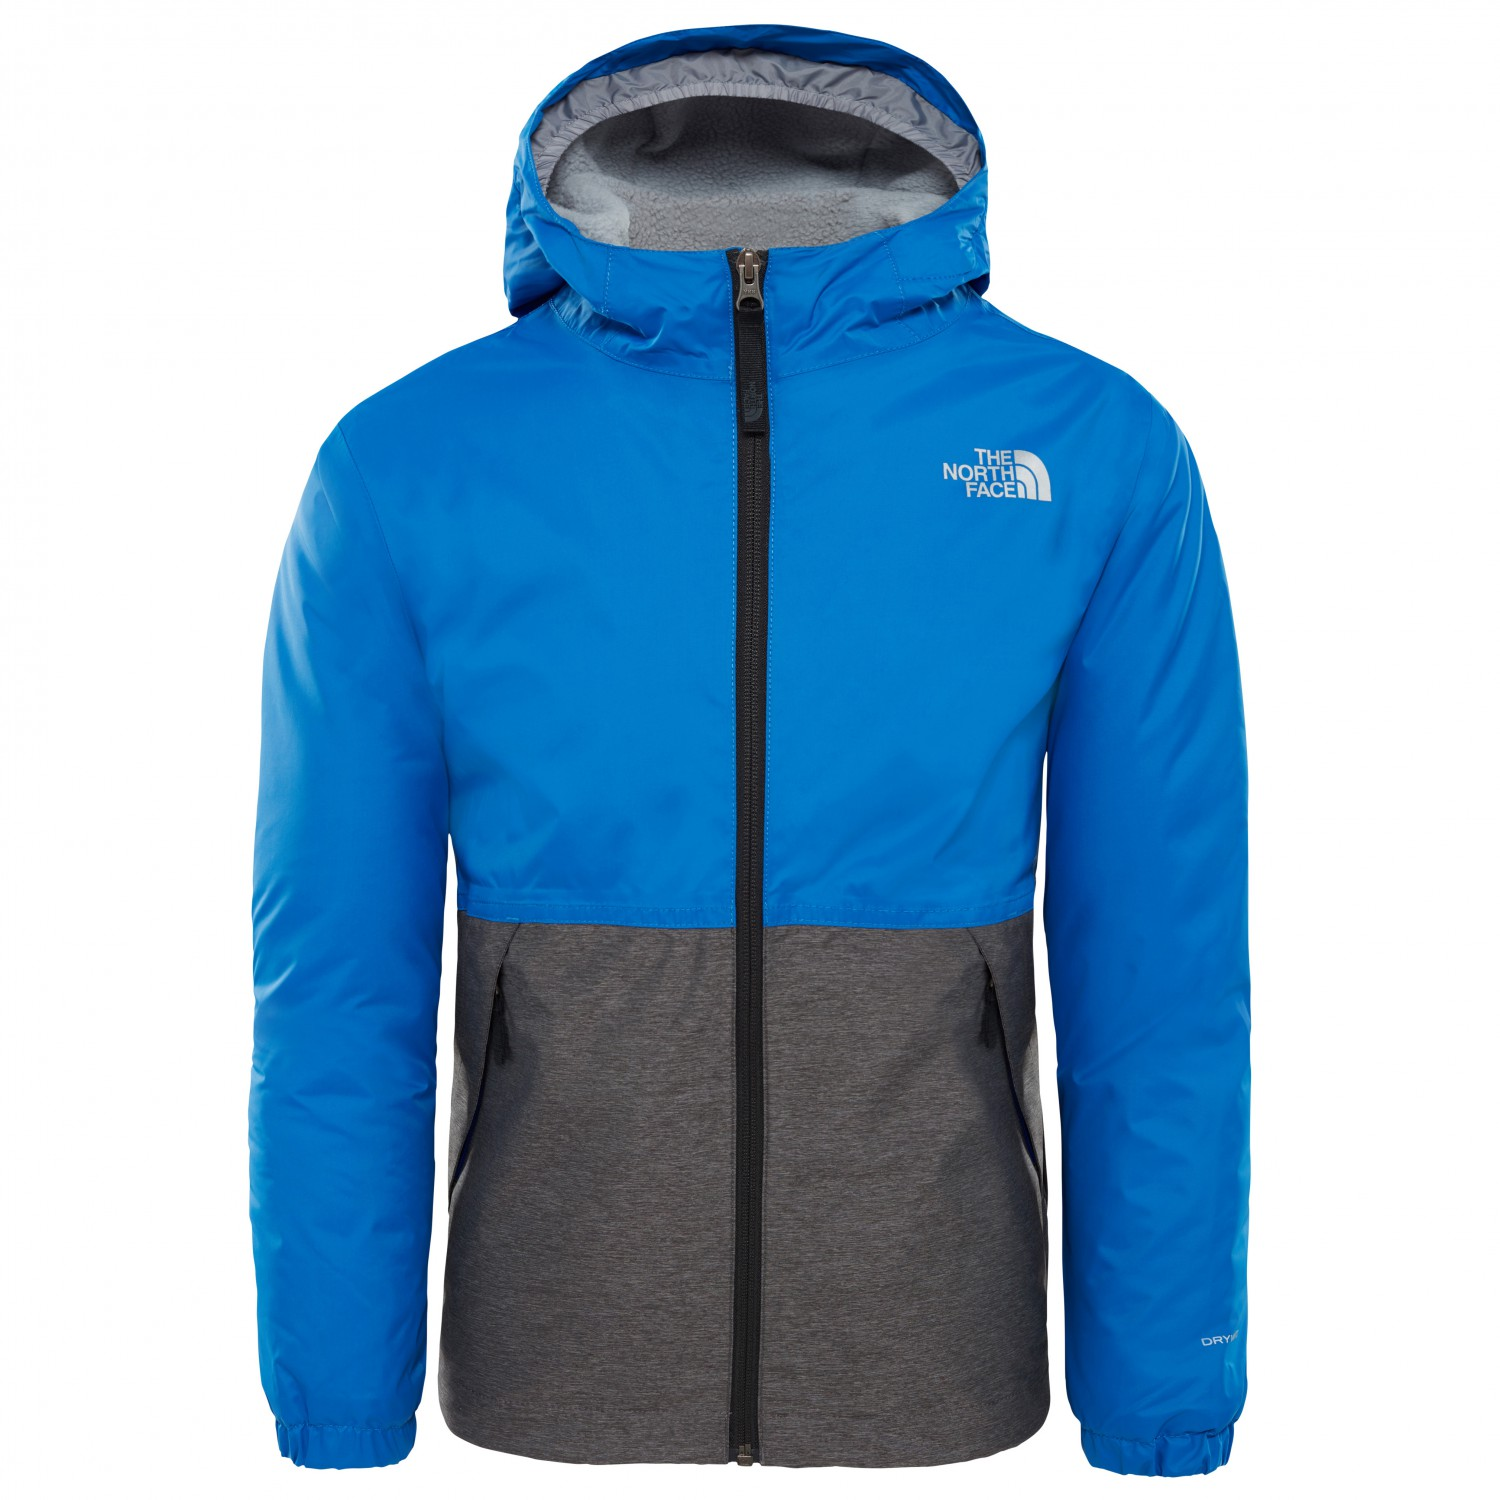 b6fb4a20e The North Face - Boy's Warm Storm Jacket - Winter jacket